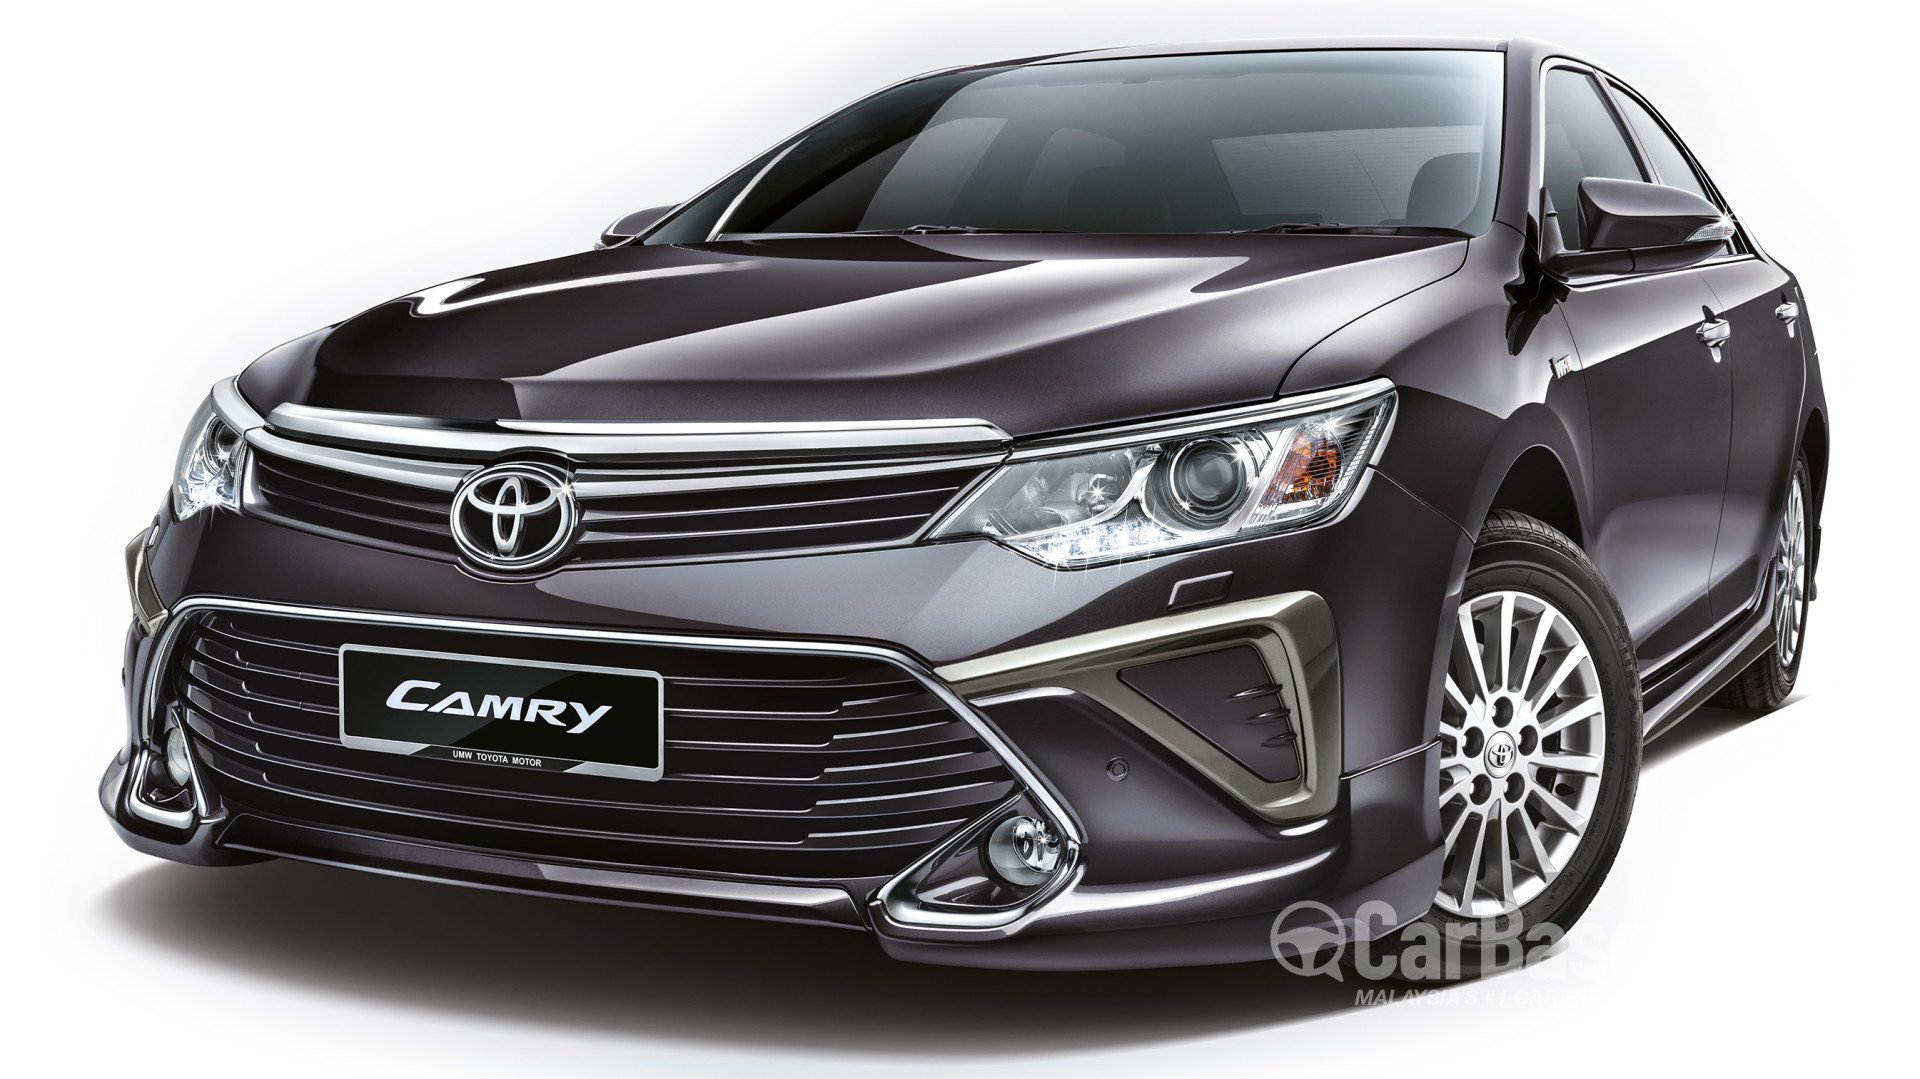 toyota camry mk7 facelift 2015 exterior image 20235 in malaysia reviews specs prices. Black Bedroom Furniture Sets. Home Design Ideas